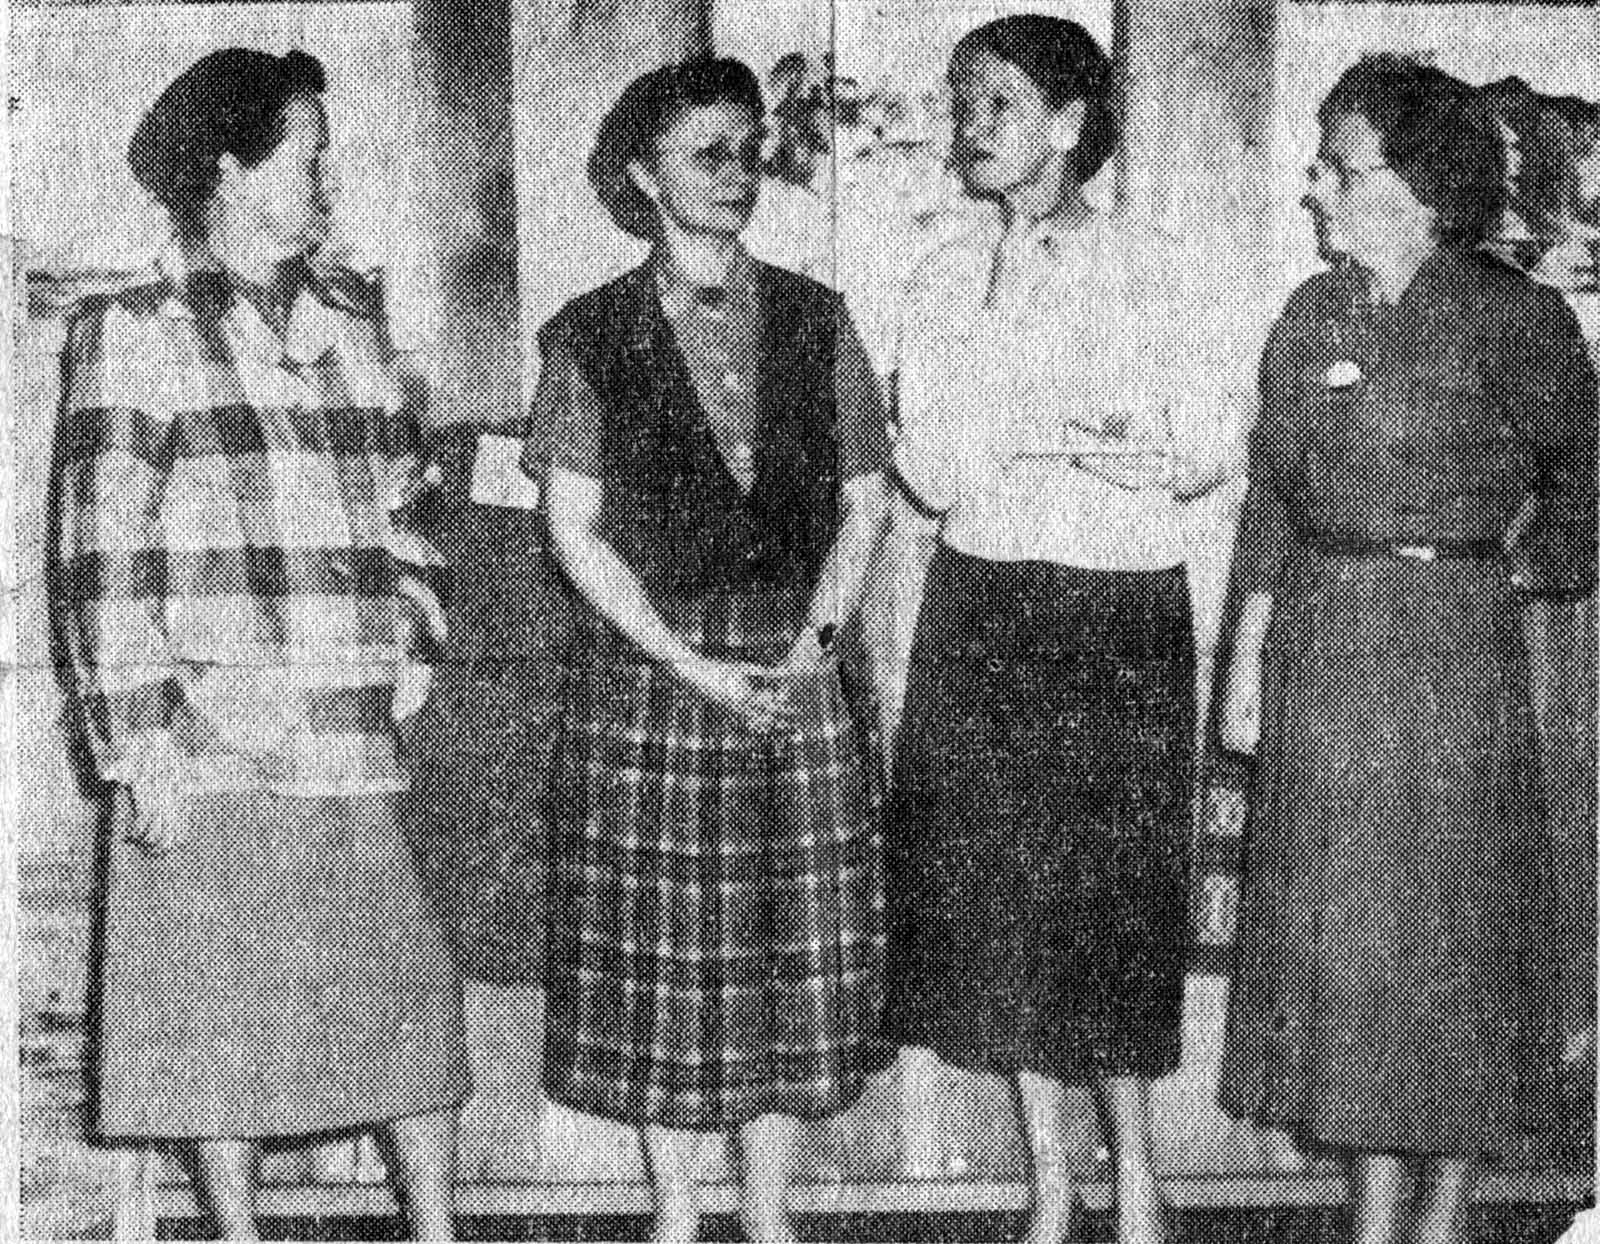 ELECTED AS NEW OFFICERS of Bainbridge Arts and Crafts at a meeting of the group November 3, were these four Island women. From the left, Mrs. Thomas Bourns, Wing Point, chairman; Mrs. George Dennis, Sunrise Drive, membership chairman; Mrs. Mimi S. McArdle, Venice, secretary and publicity, and Mrs. Evald Eliason, Port Madison, treasurer. Visible on the wall are three paintings on display in the Arts and Craft's gift shop in the Review Building, Winslow. (2-18-1954)